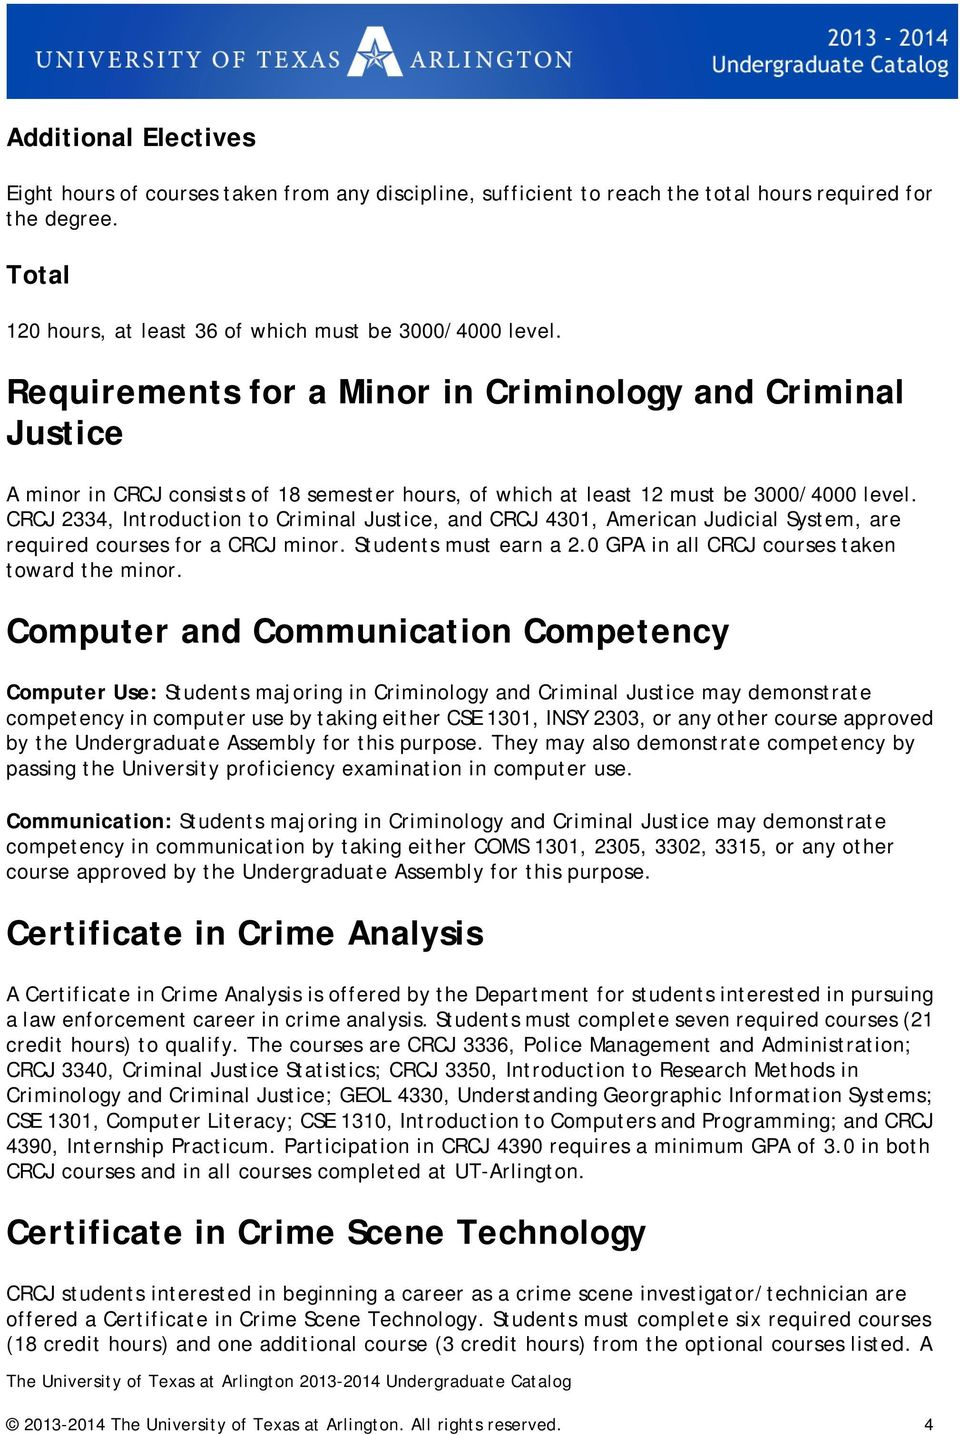 CRCJ 2334, Introduction to Criminal Justice, and CRCJ 4301, American Judicial System, are required courses for a CRCJ minor. Students must earn a 2.0 GPA in all CRCJ courses taken toward the minor.